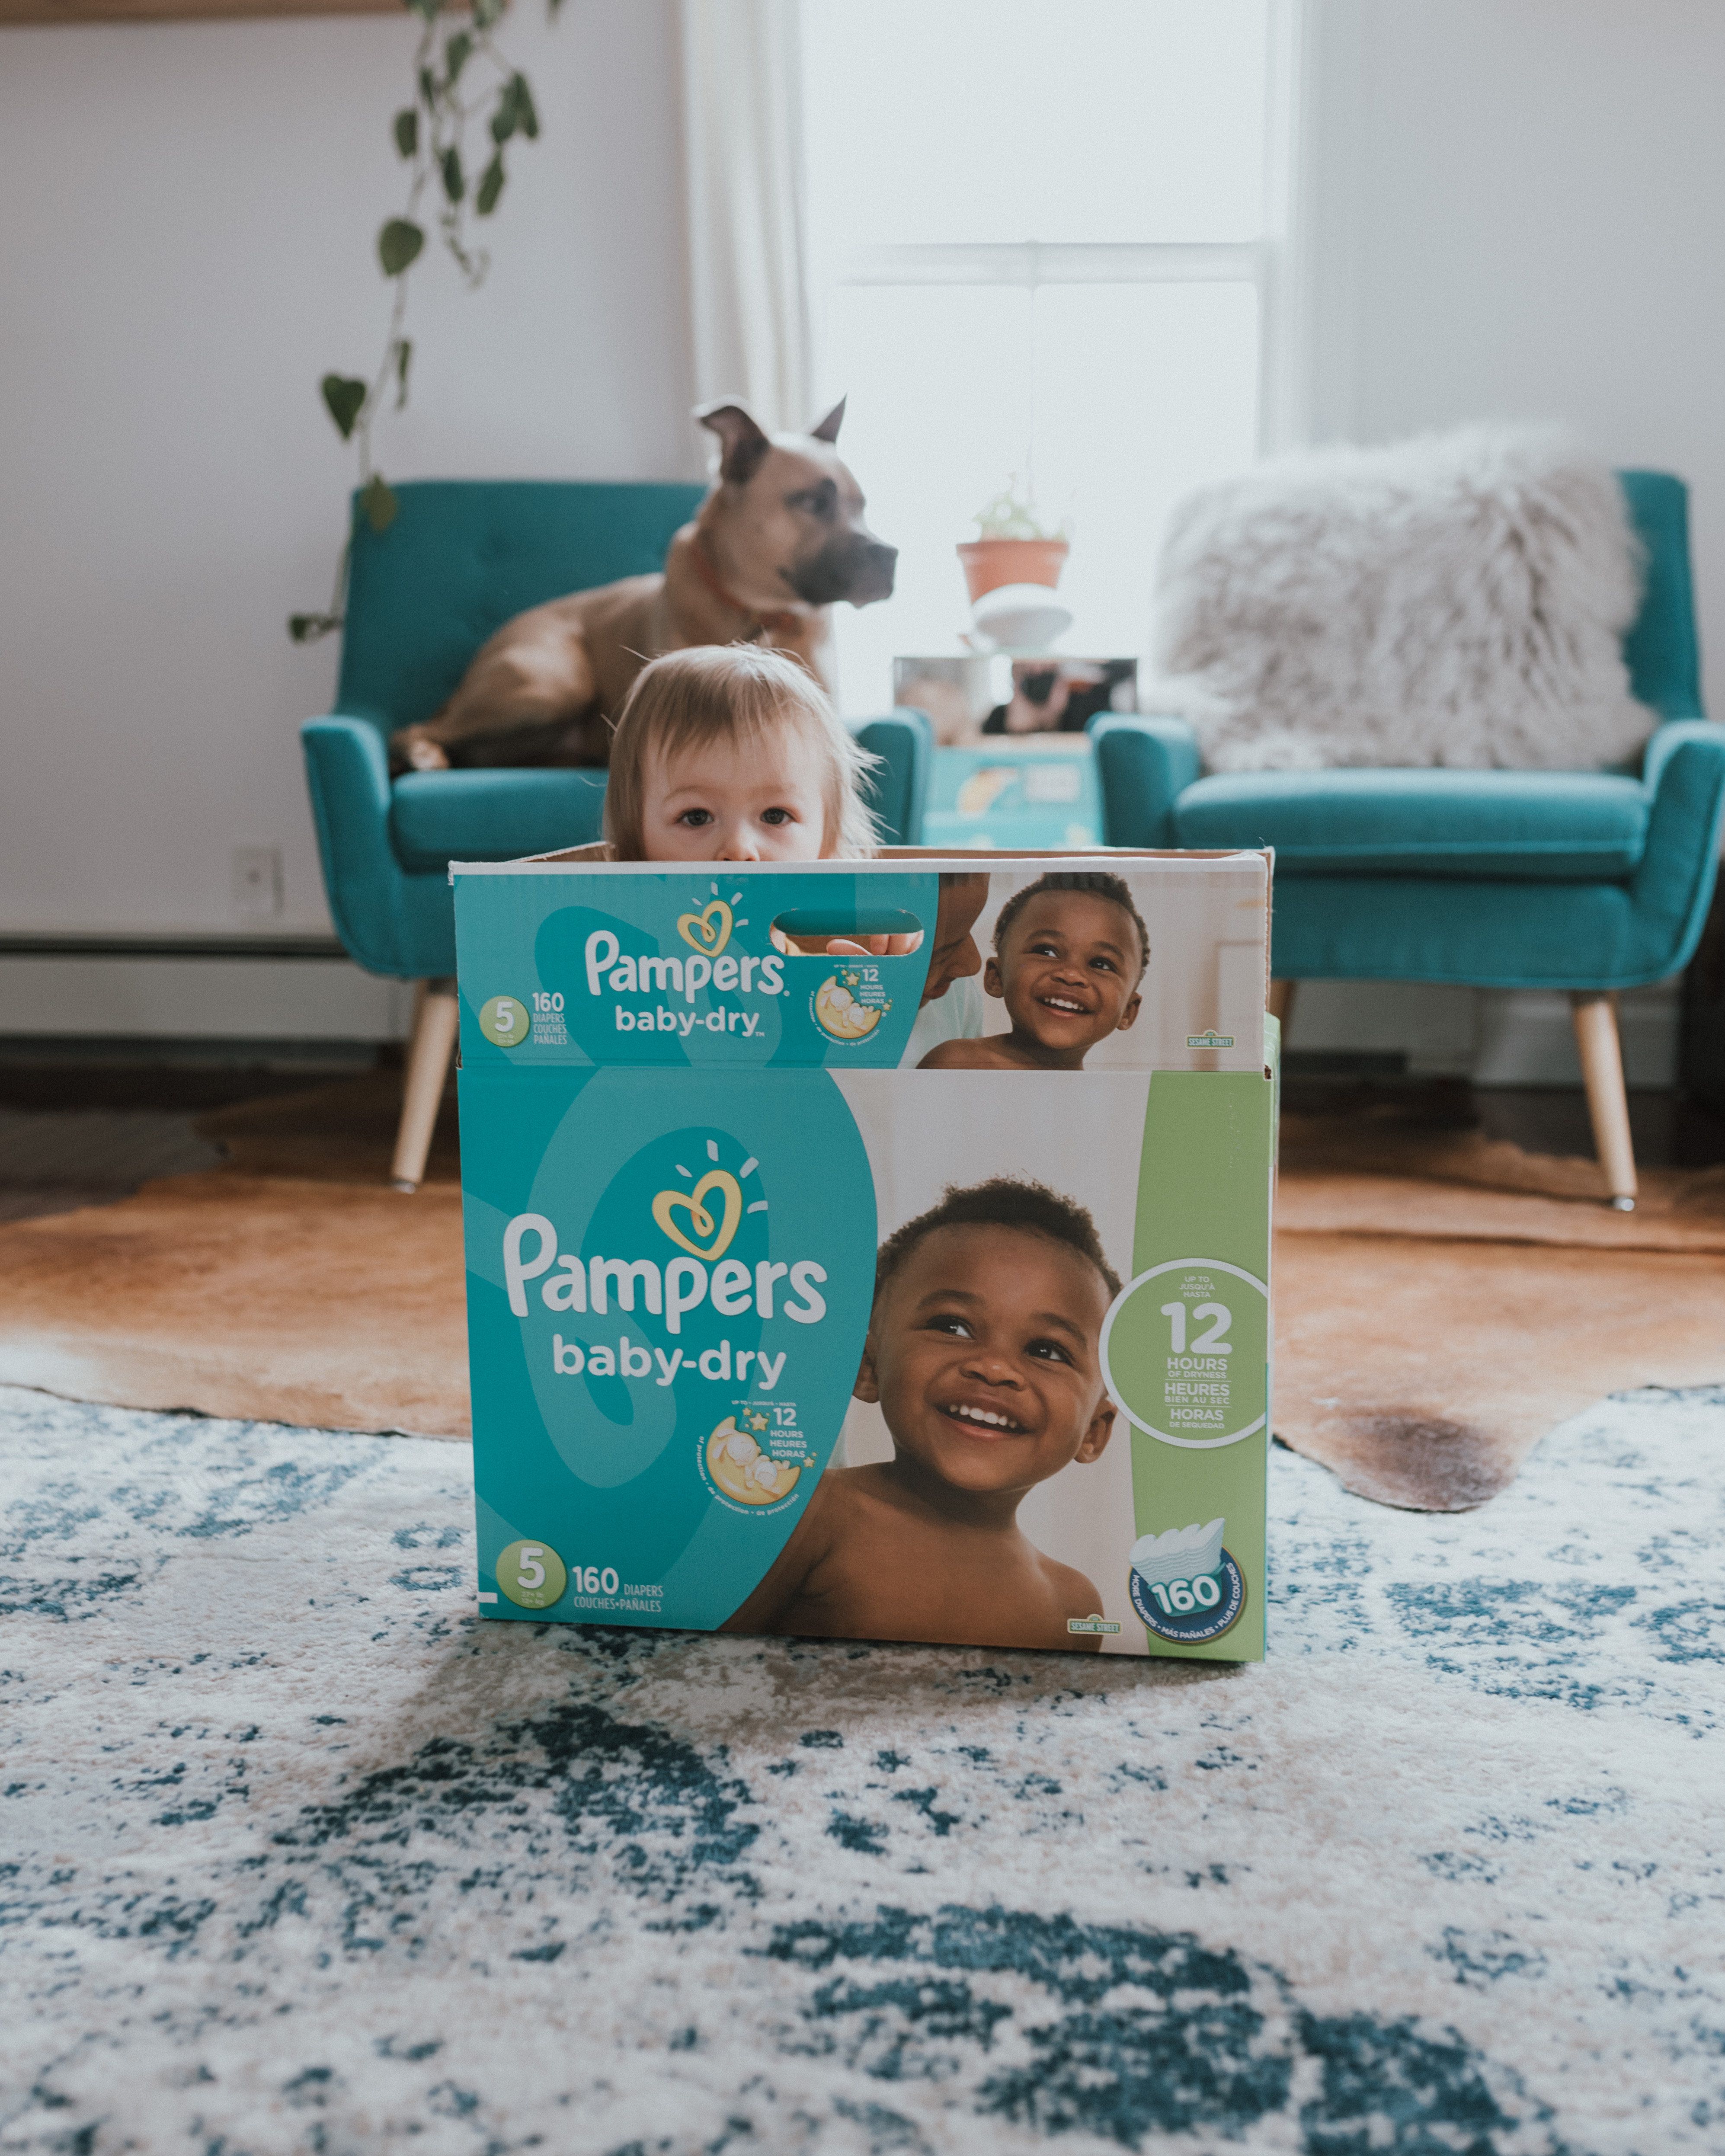 Being Rewarded With Pampers Rewards App